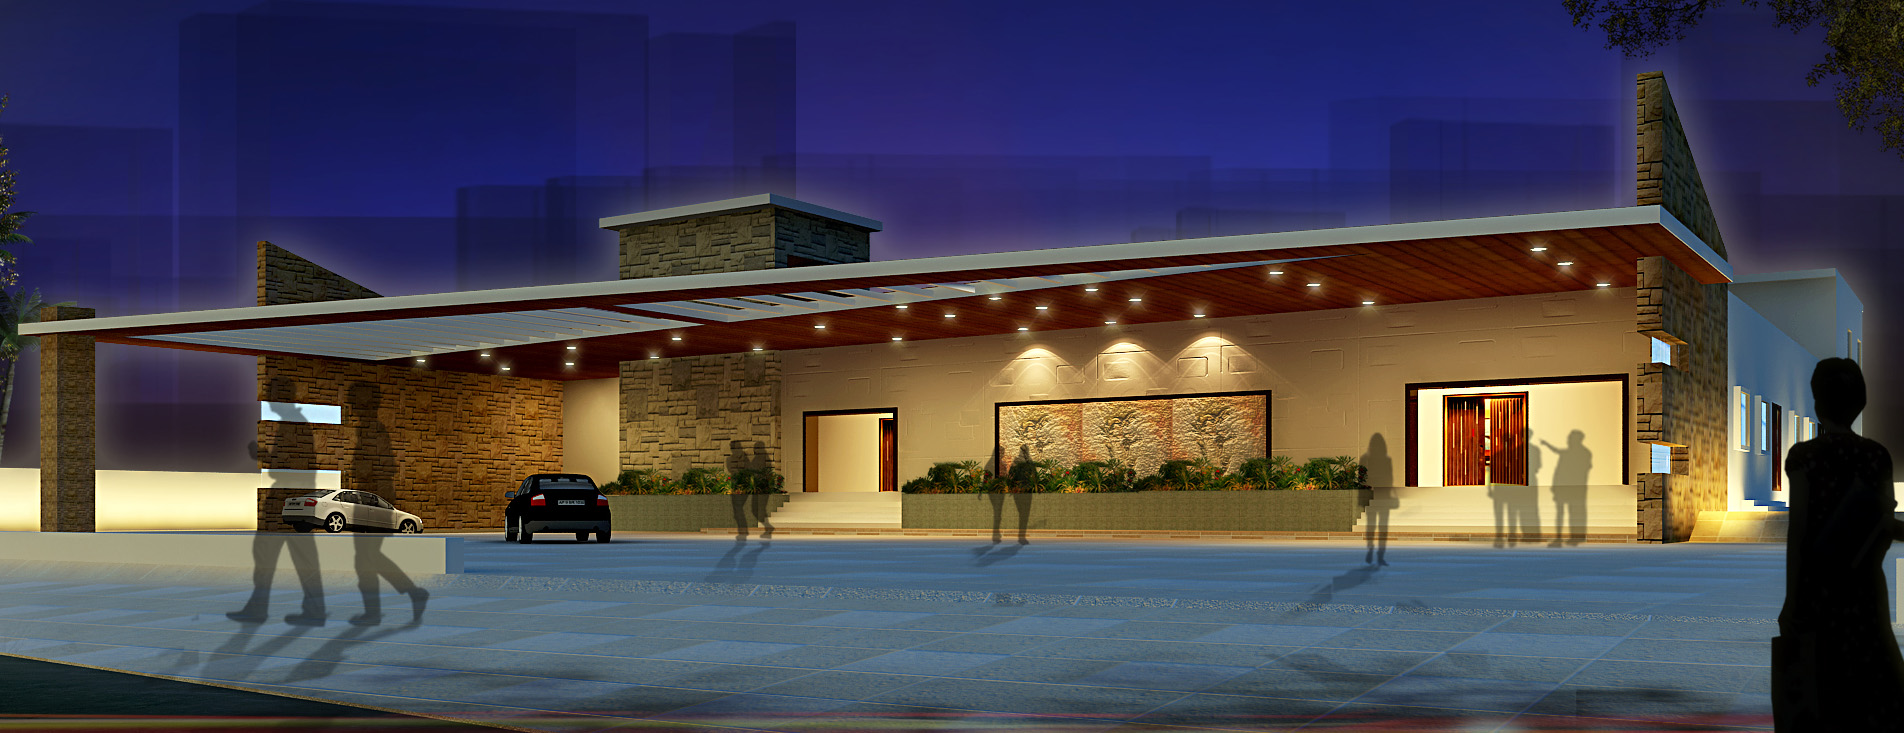 AR CONCEPTS   Kln Convention Hall Elevation Image